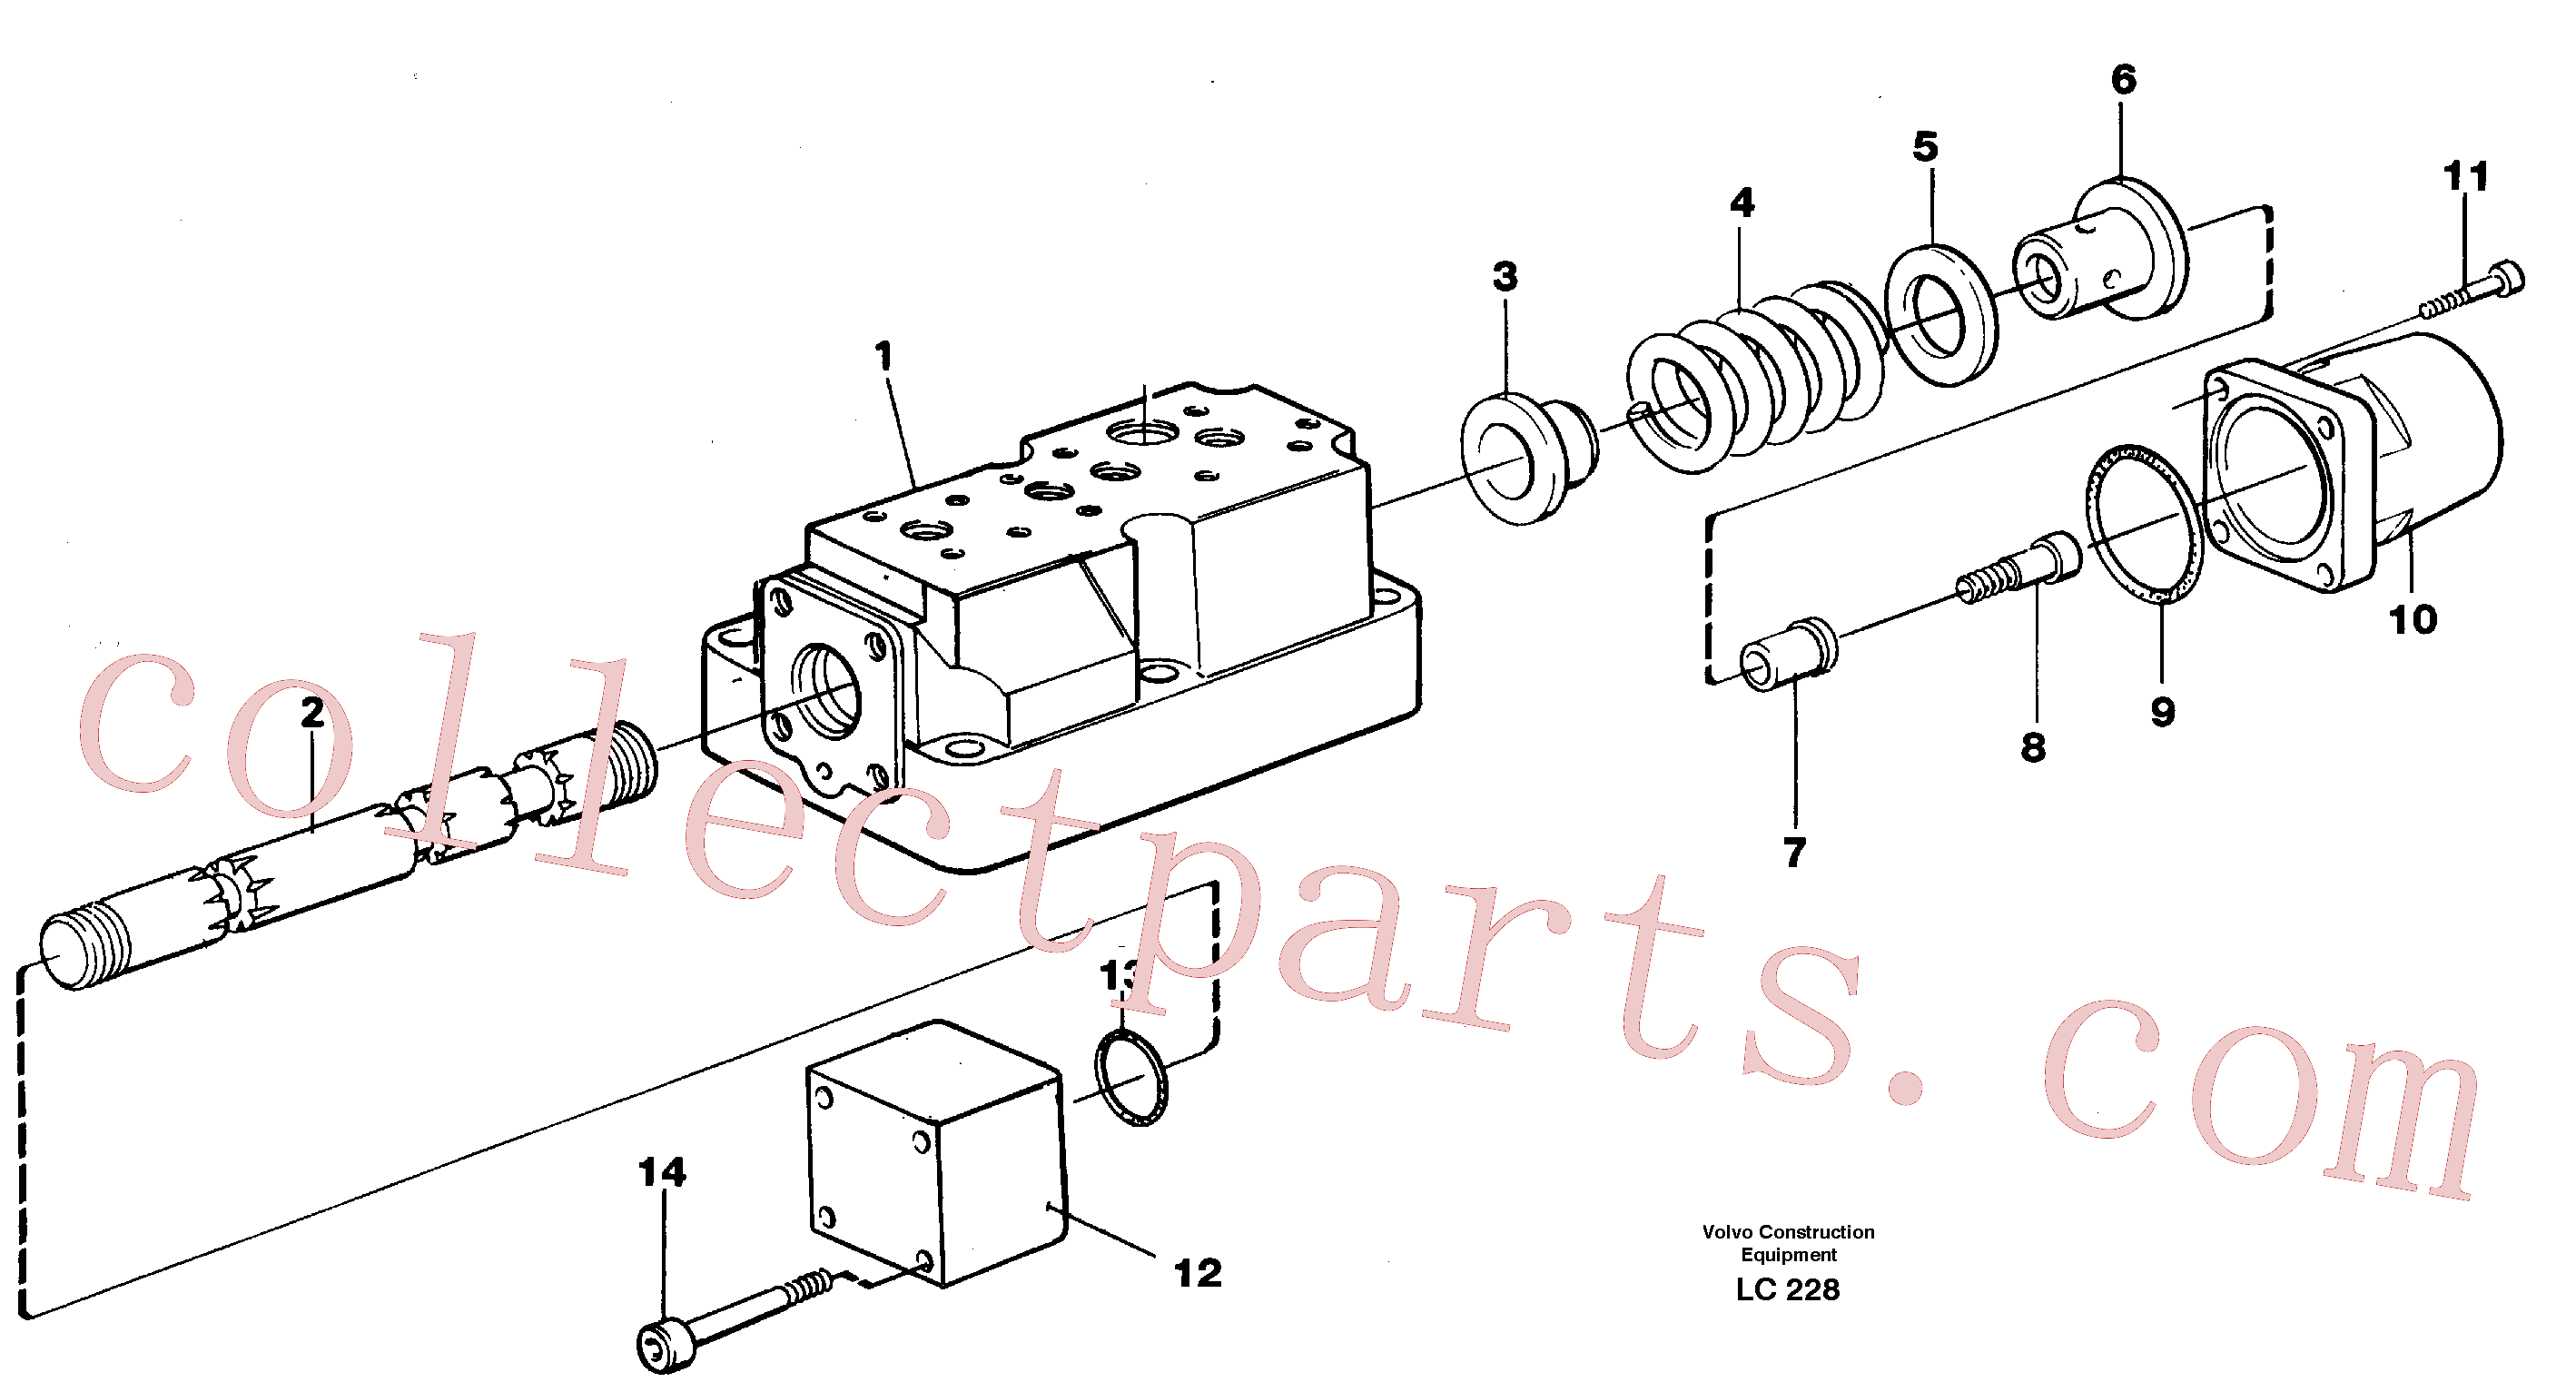 VOE14048548 for Volvo Four-way valve, rotating equipment(LC228 assembly)